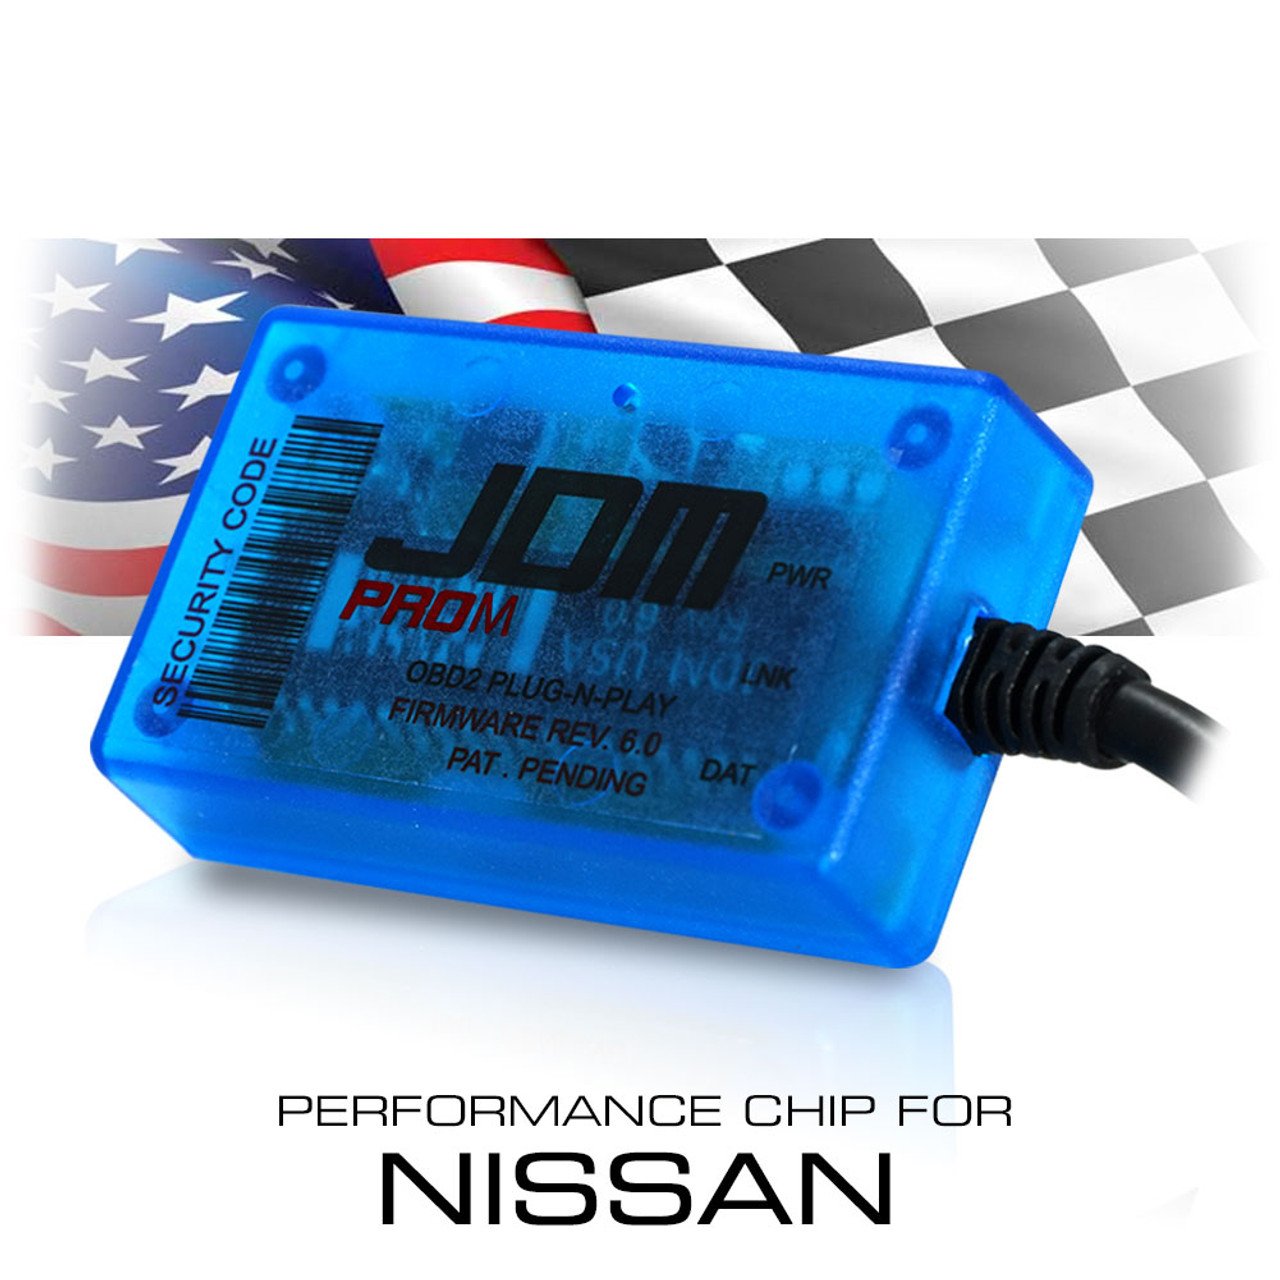 Stage 3 Performance Chip OBDII Module for Nissan